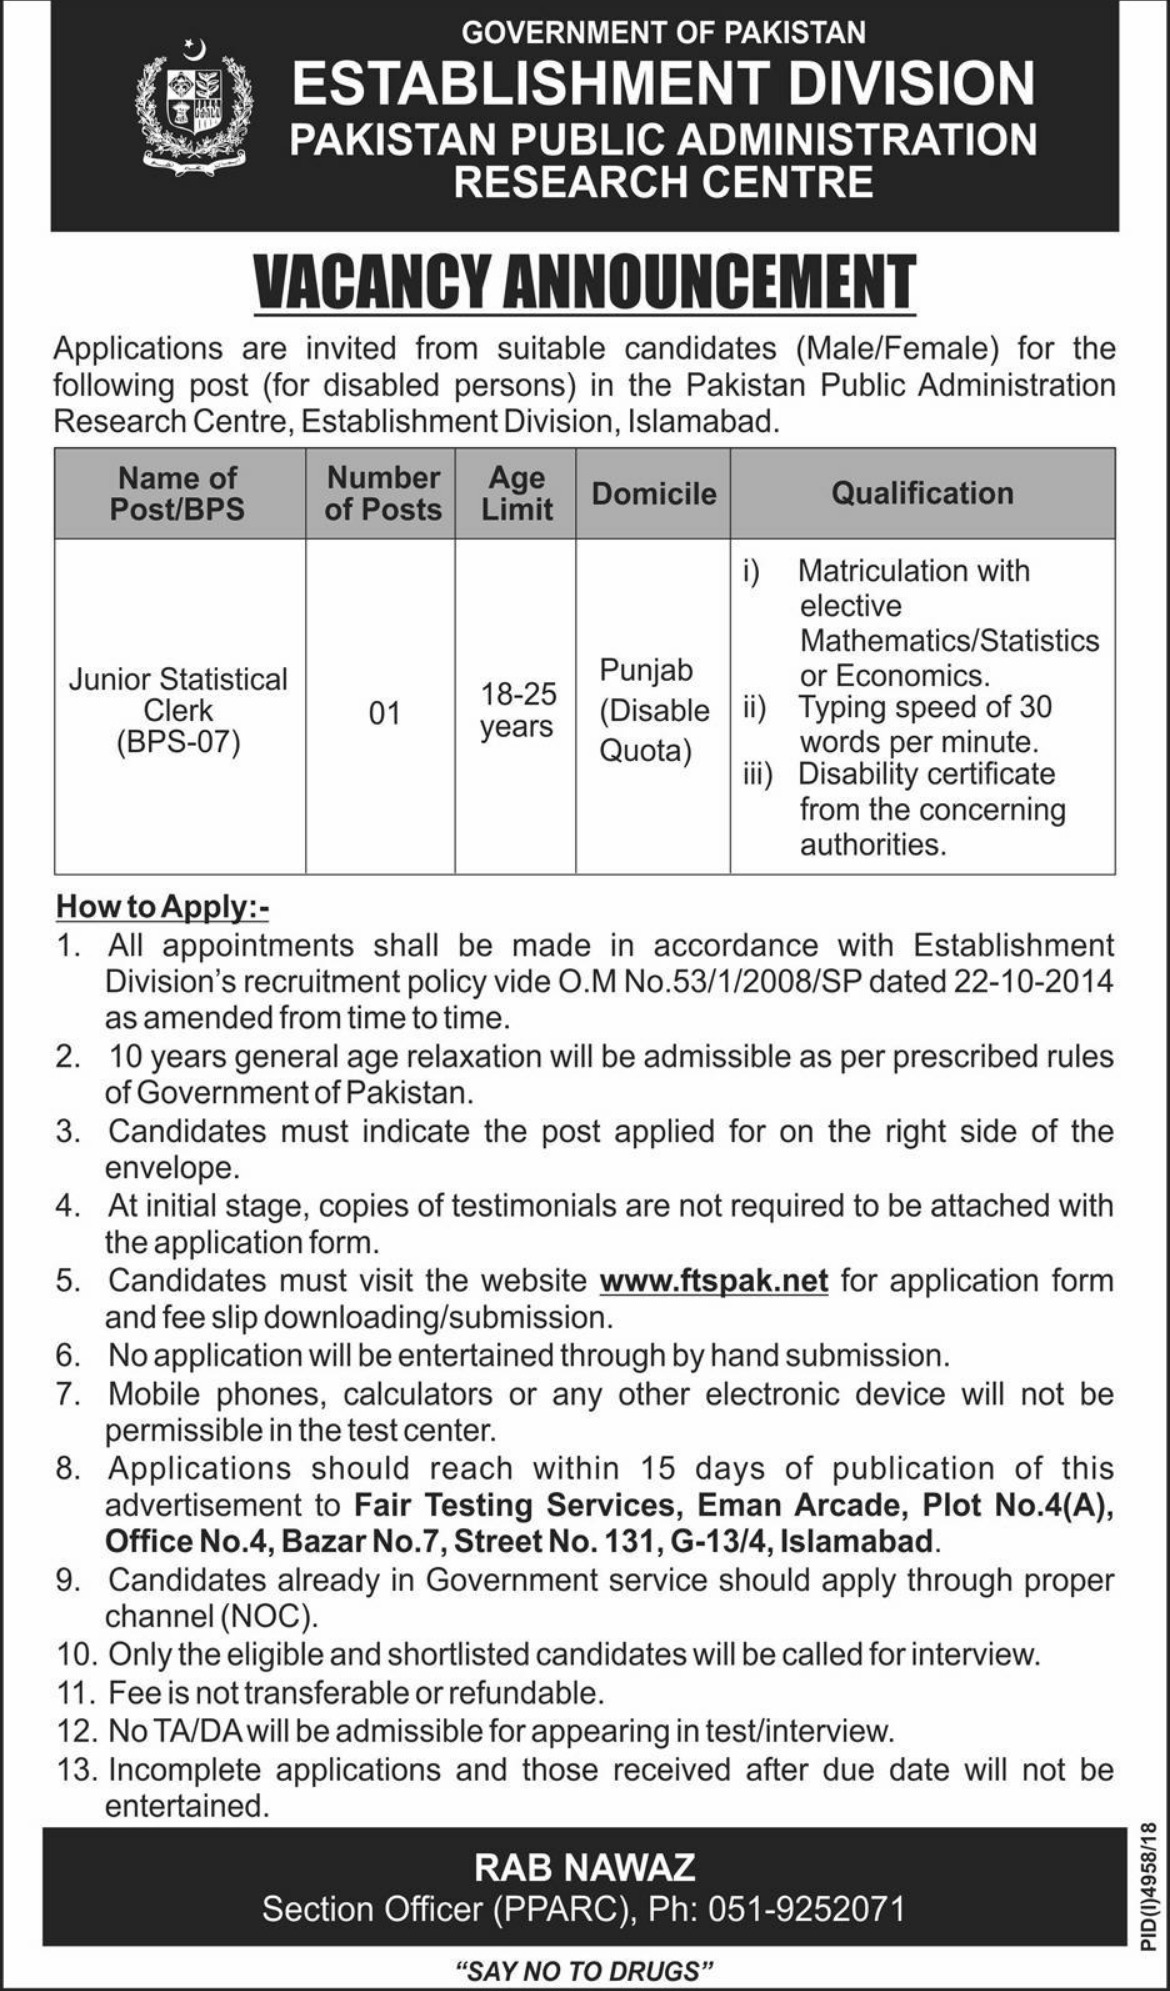 Pakistan Public Administration Research Centre PPARC Jobs 2019 Establishment Division Latest